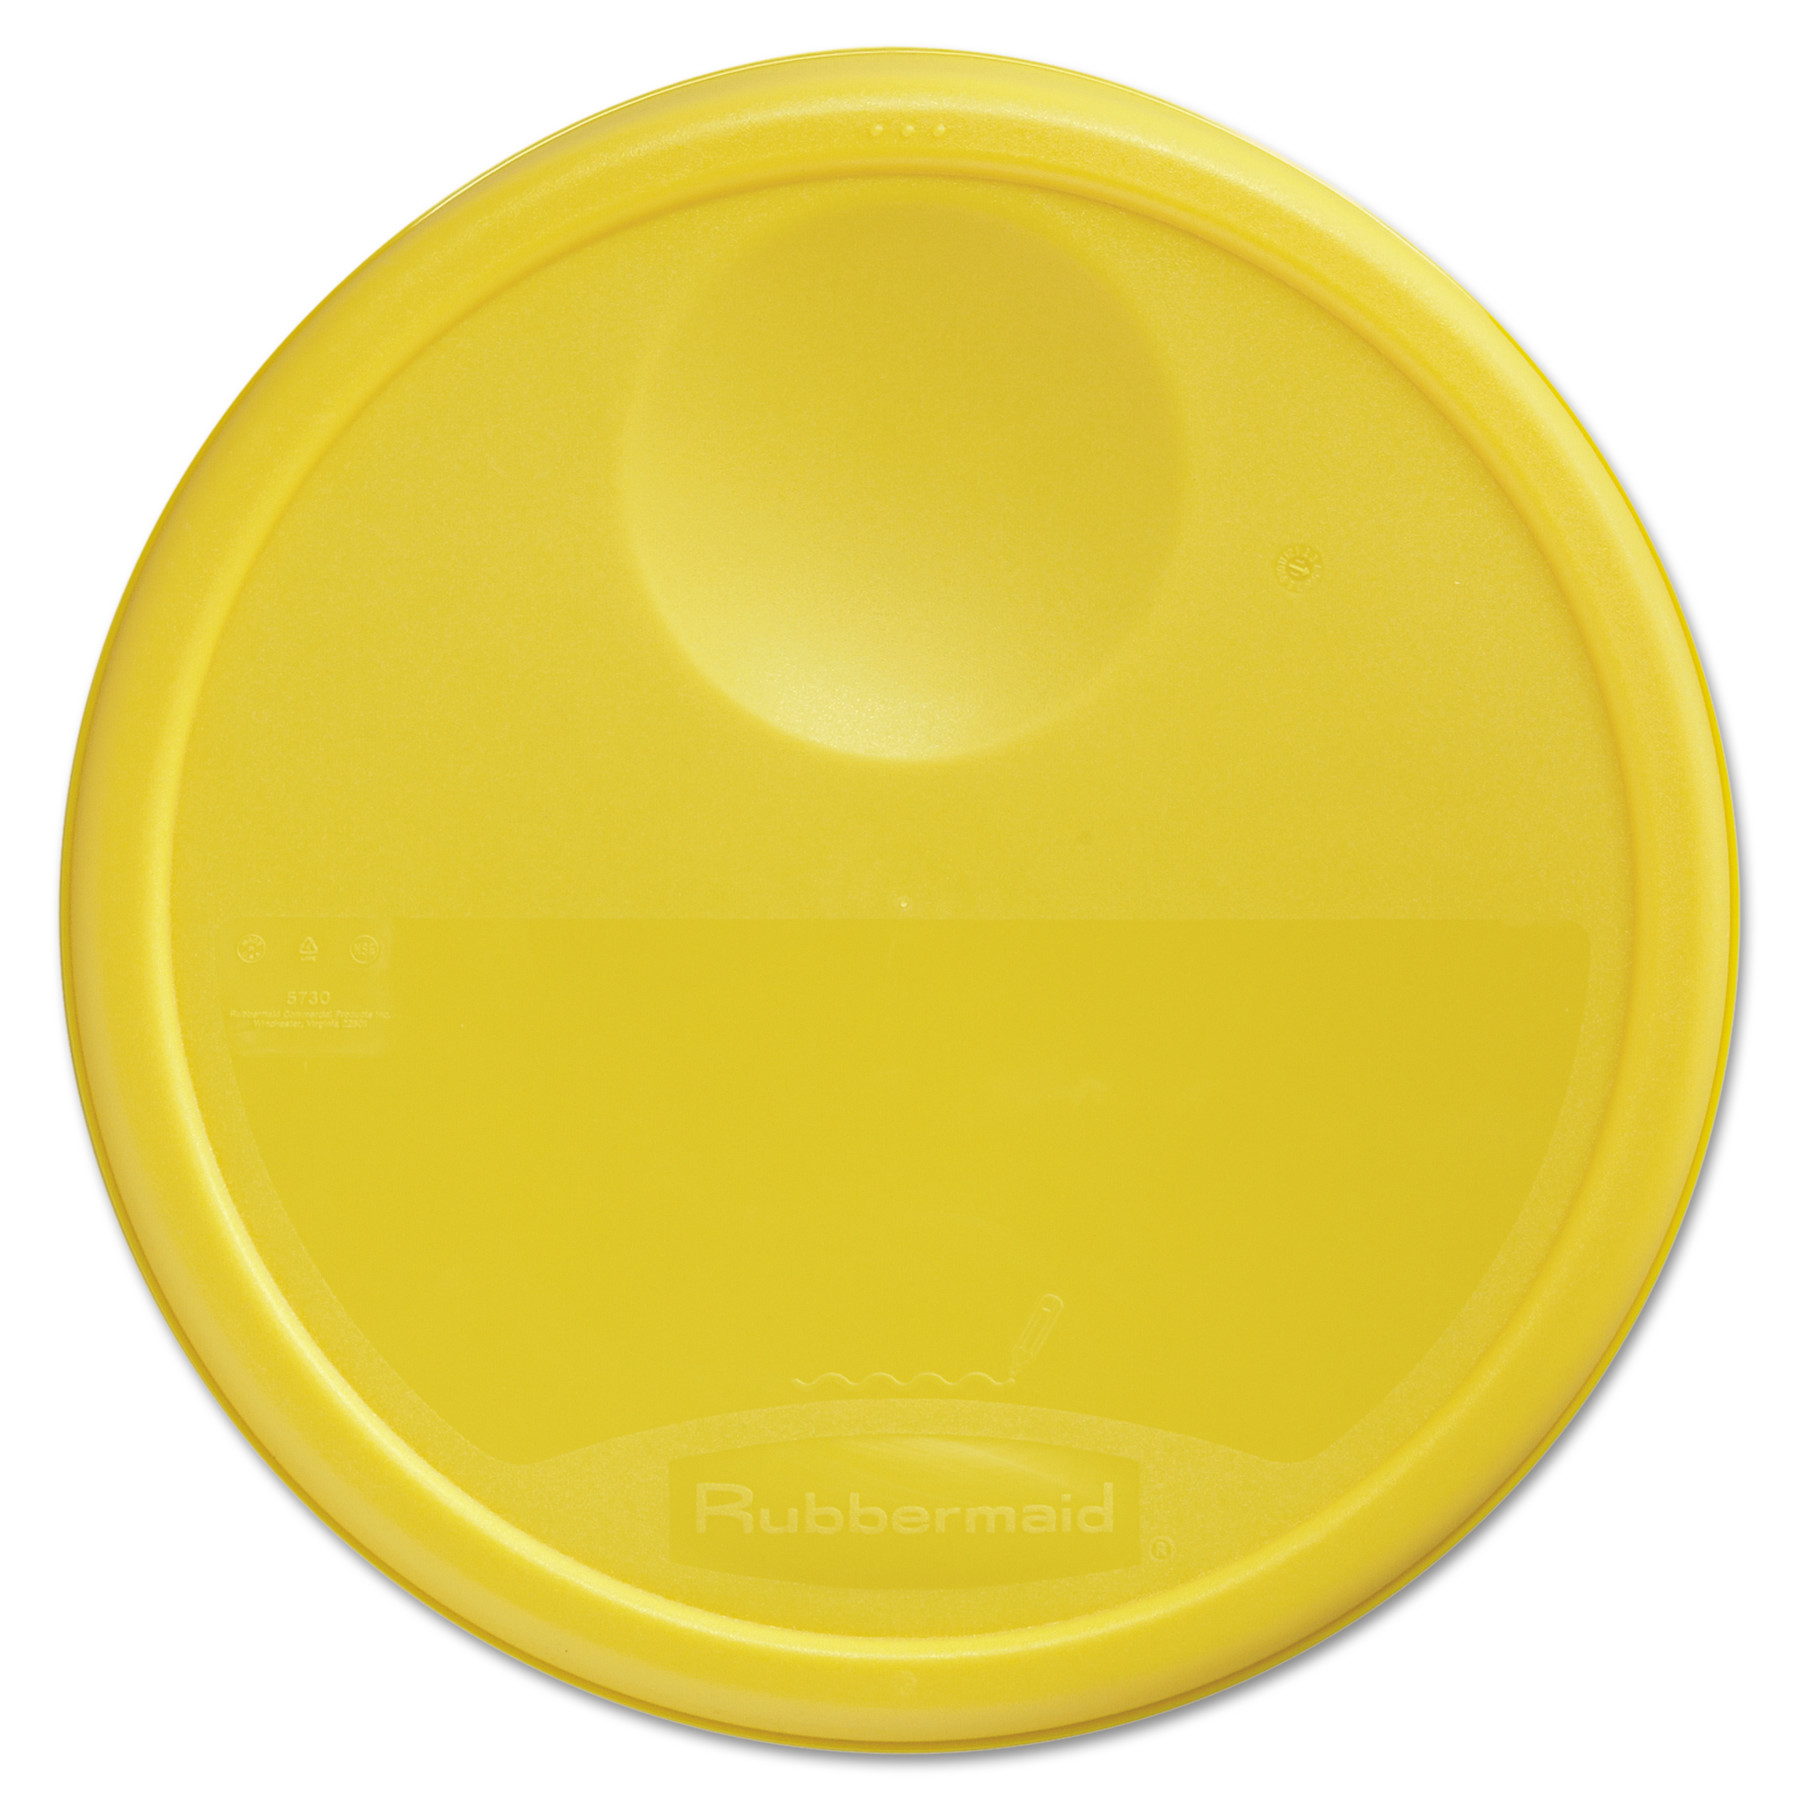 Rubbermaid Commercial Round Storage Container Lids 13 1/2 dia x 2 3/  sc 1 st  Walmart & Rubbermaid Commercial Round Storage Container Lids 13 1/2 dia x 2 3 ...